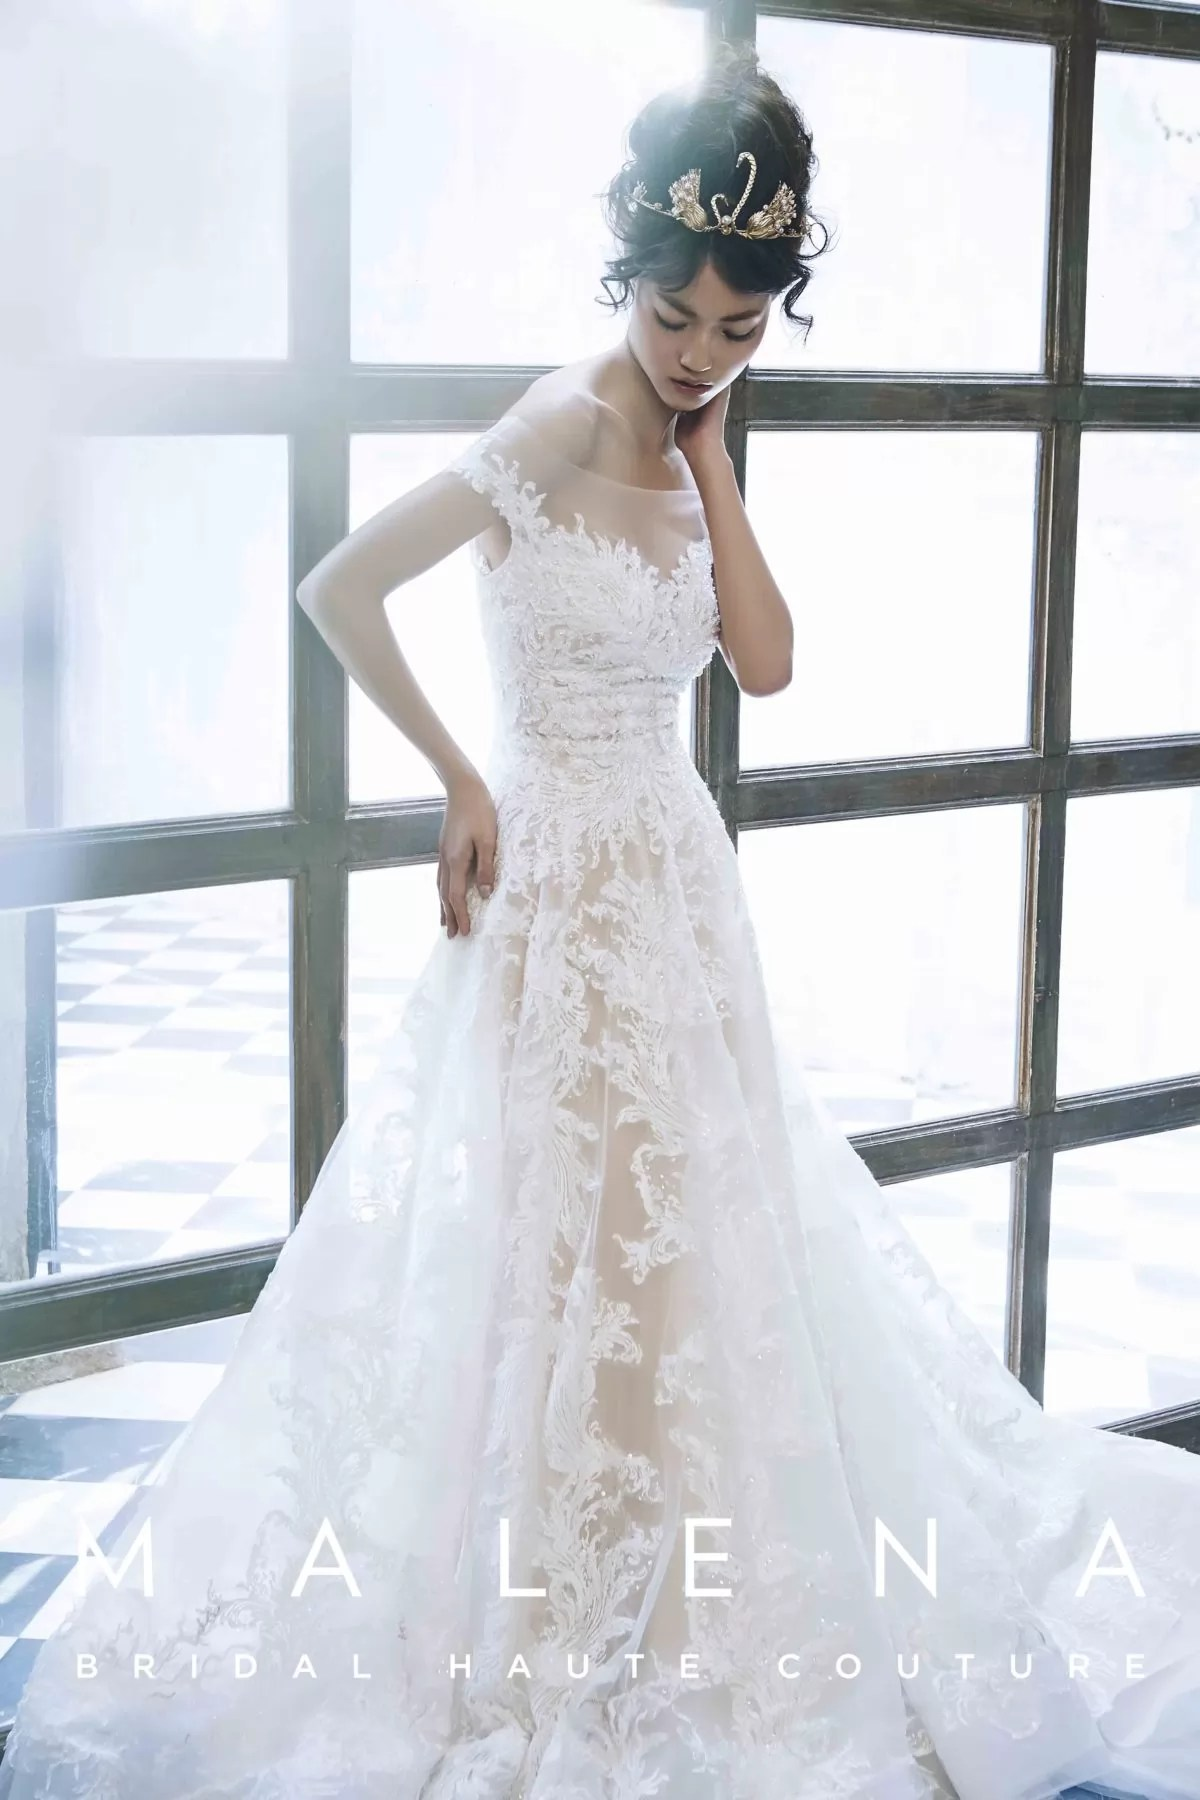 best wedding rental gown dress in singapore rental wedding dresses BESPOKE APPEAL Top Wedding Gown Rental Singapore